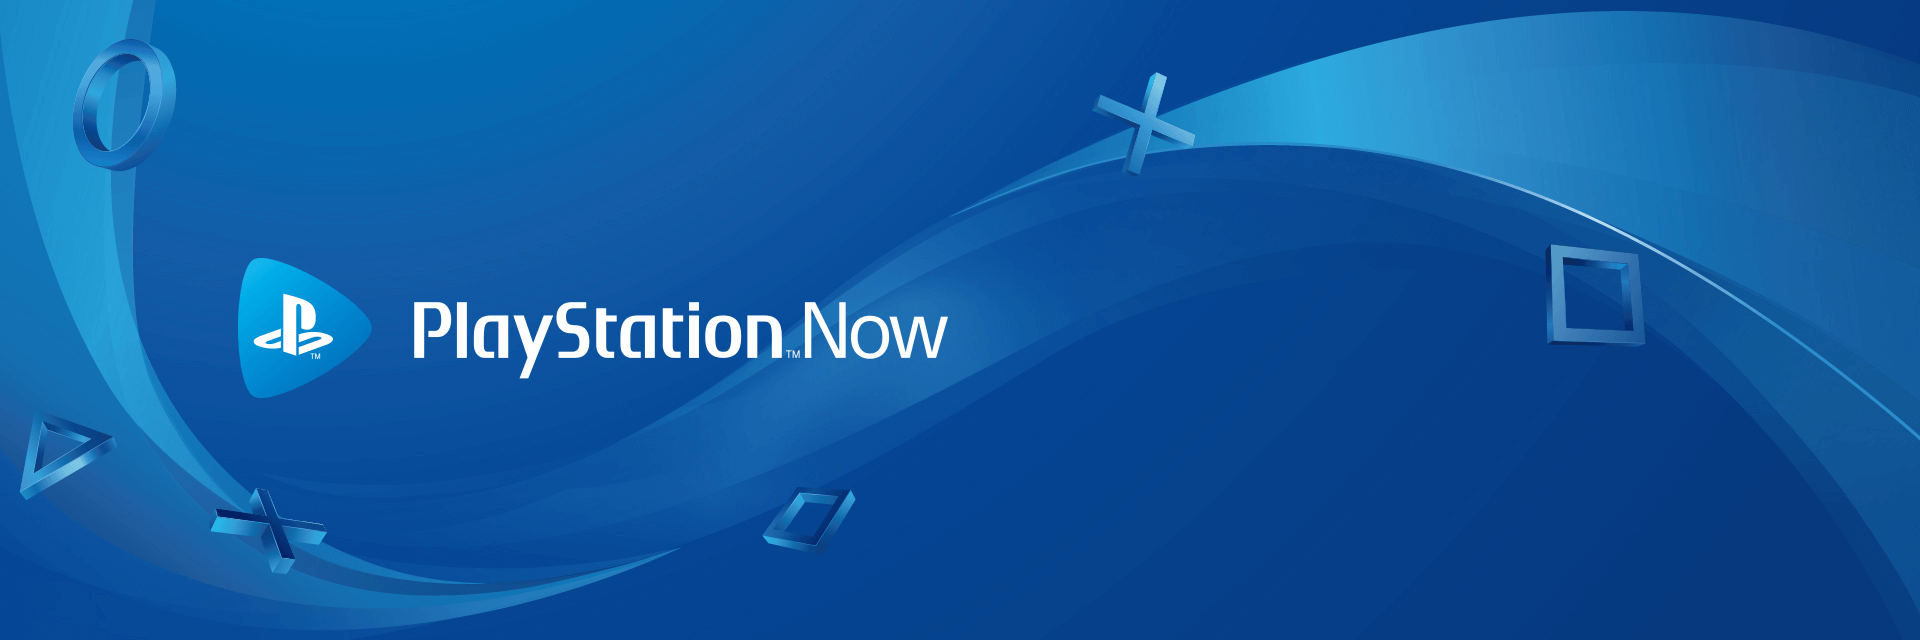 what playstation now will be in the 5g future